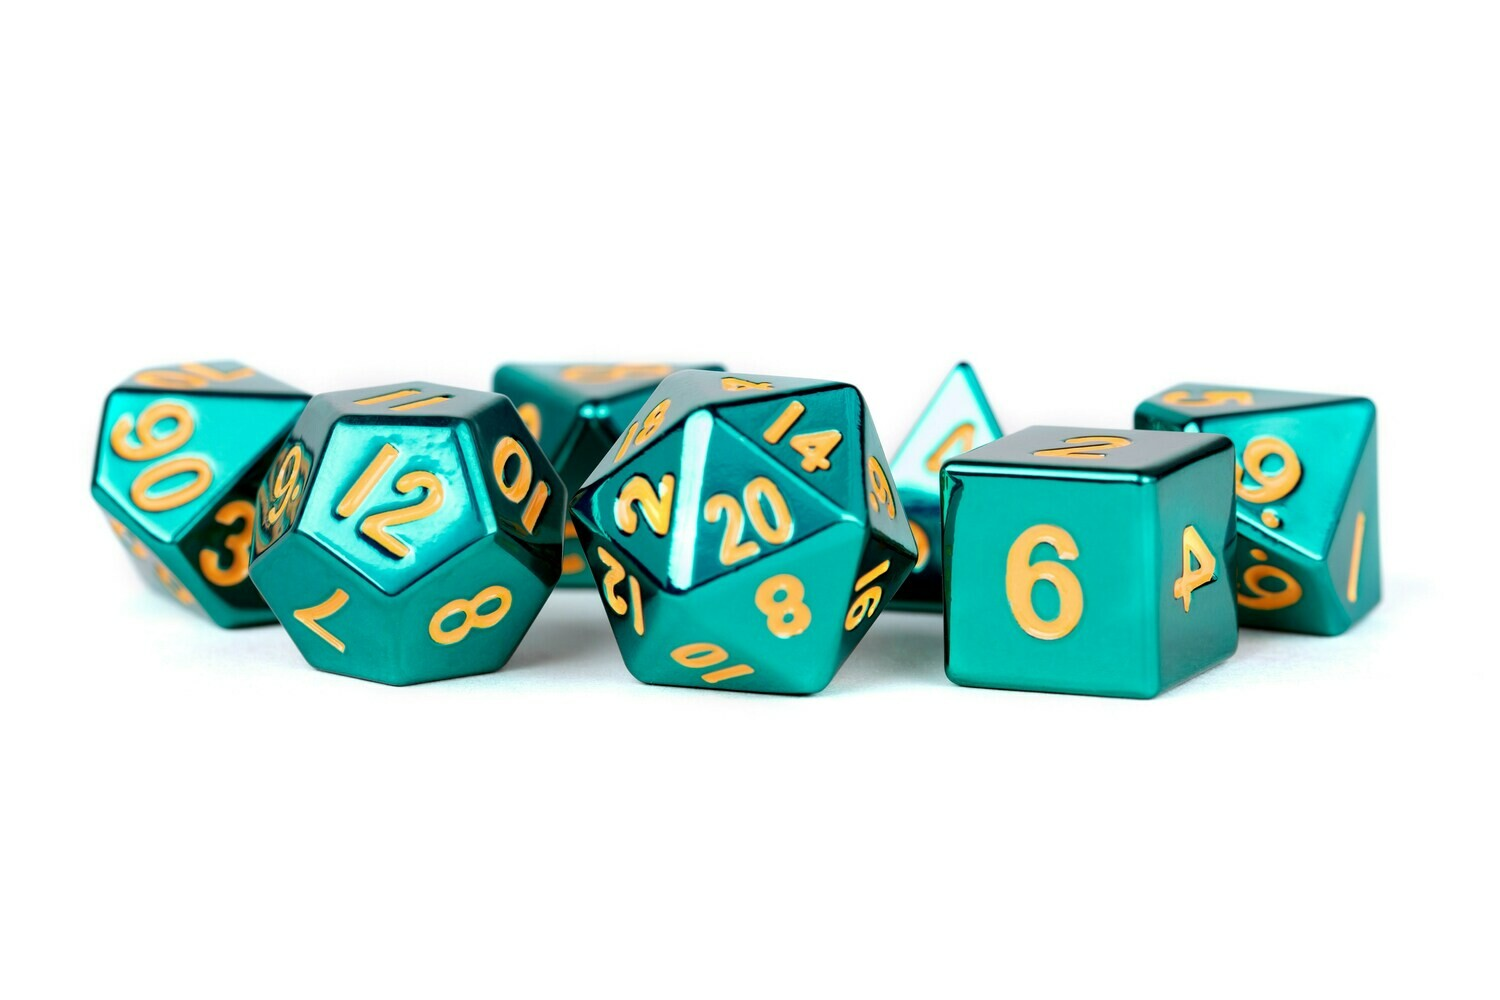 Metal Turquoise with Gold Numbers 16mm Polyhedral Dice Set (or Individually)